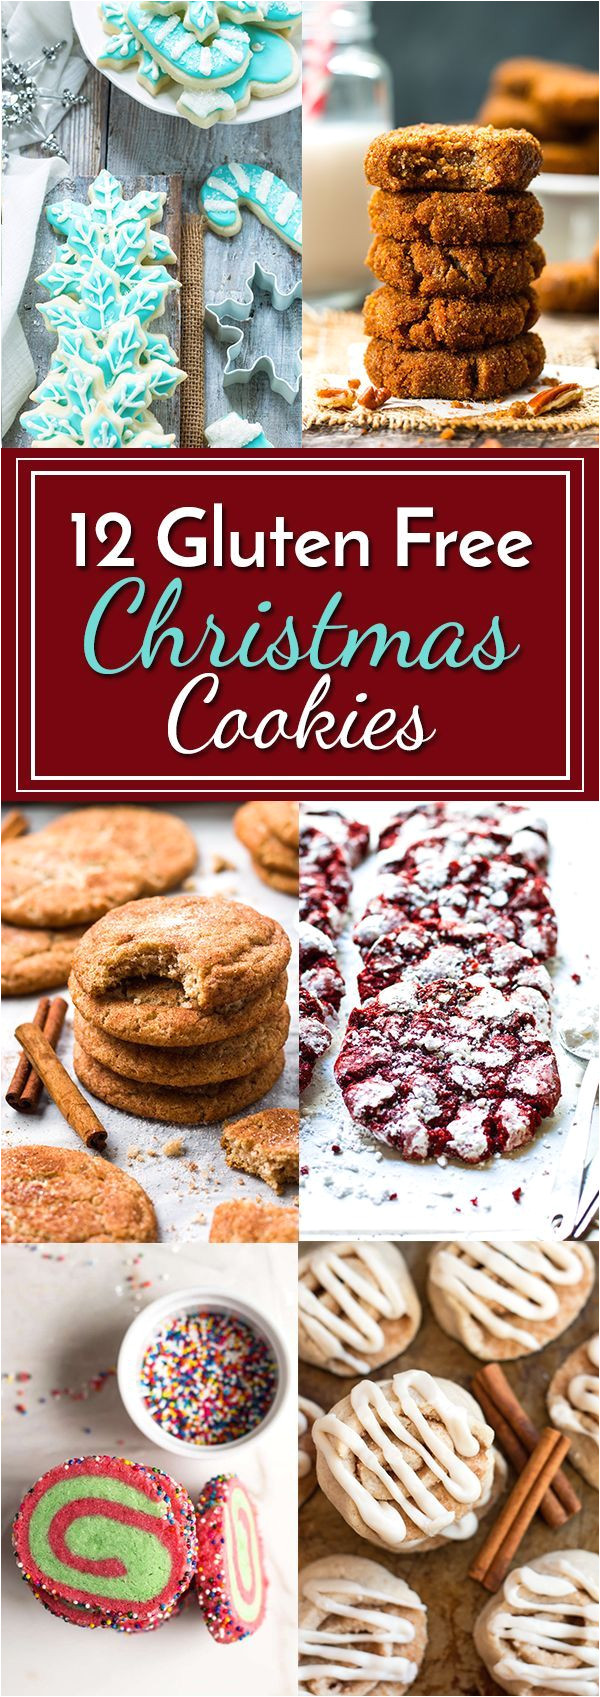 12 gluten free christmas cookies all of the gluten free cookie recipes you need for